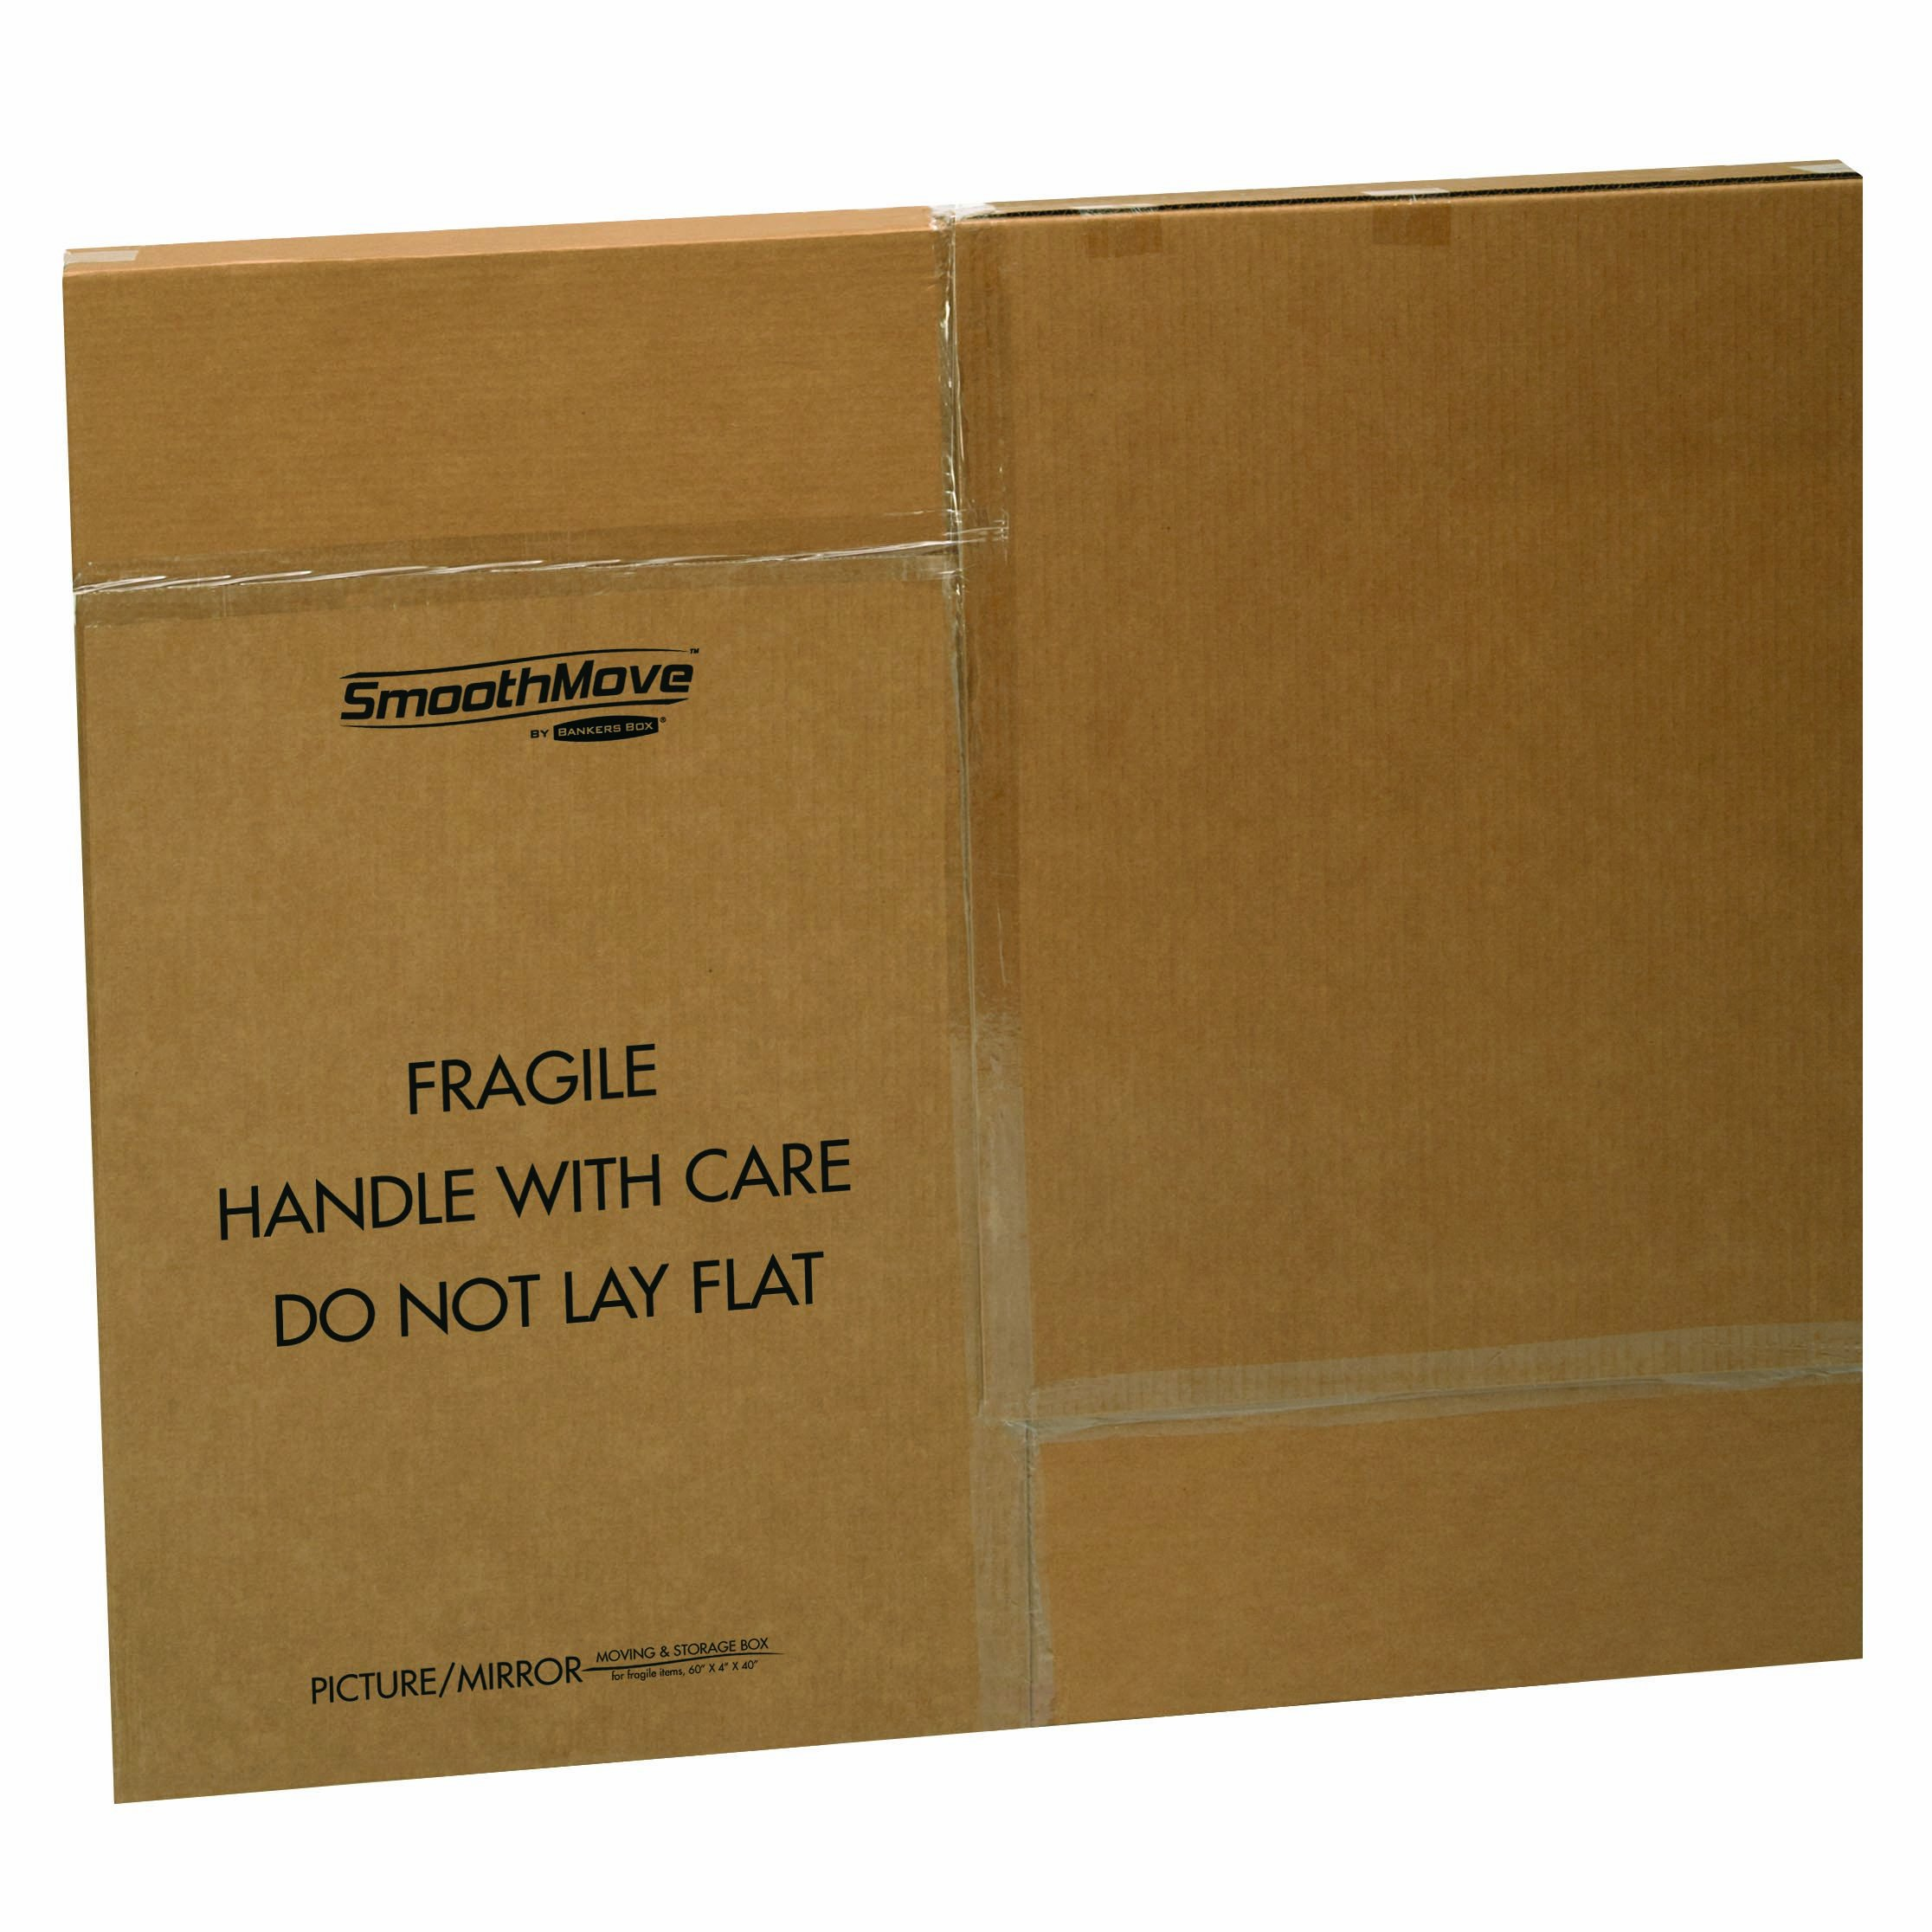 Bankers Box SmoothMove TV/Picture/Mirror Moving Box, Adjustable, 40 x 60 x 4 Inches, 3 Pack (7711401)